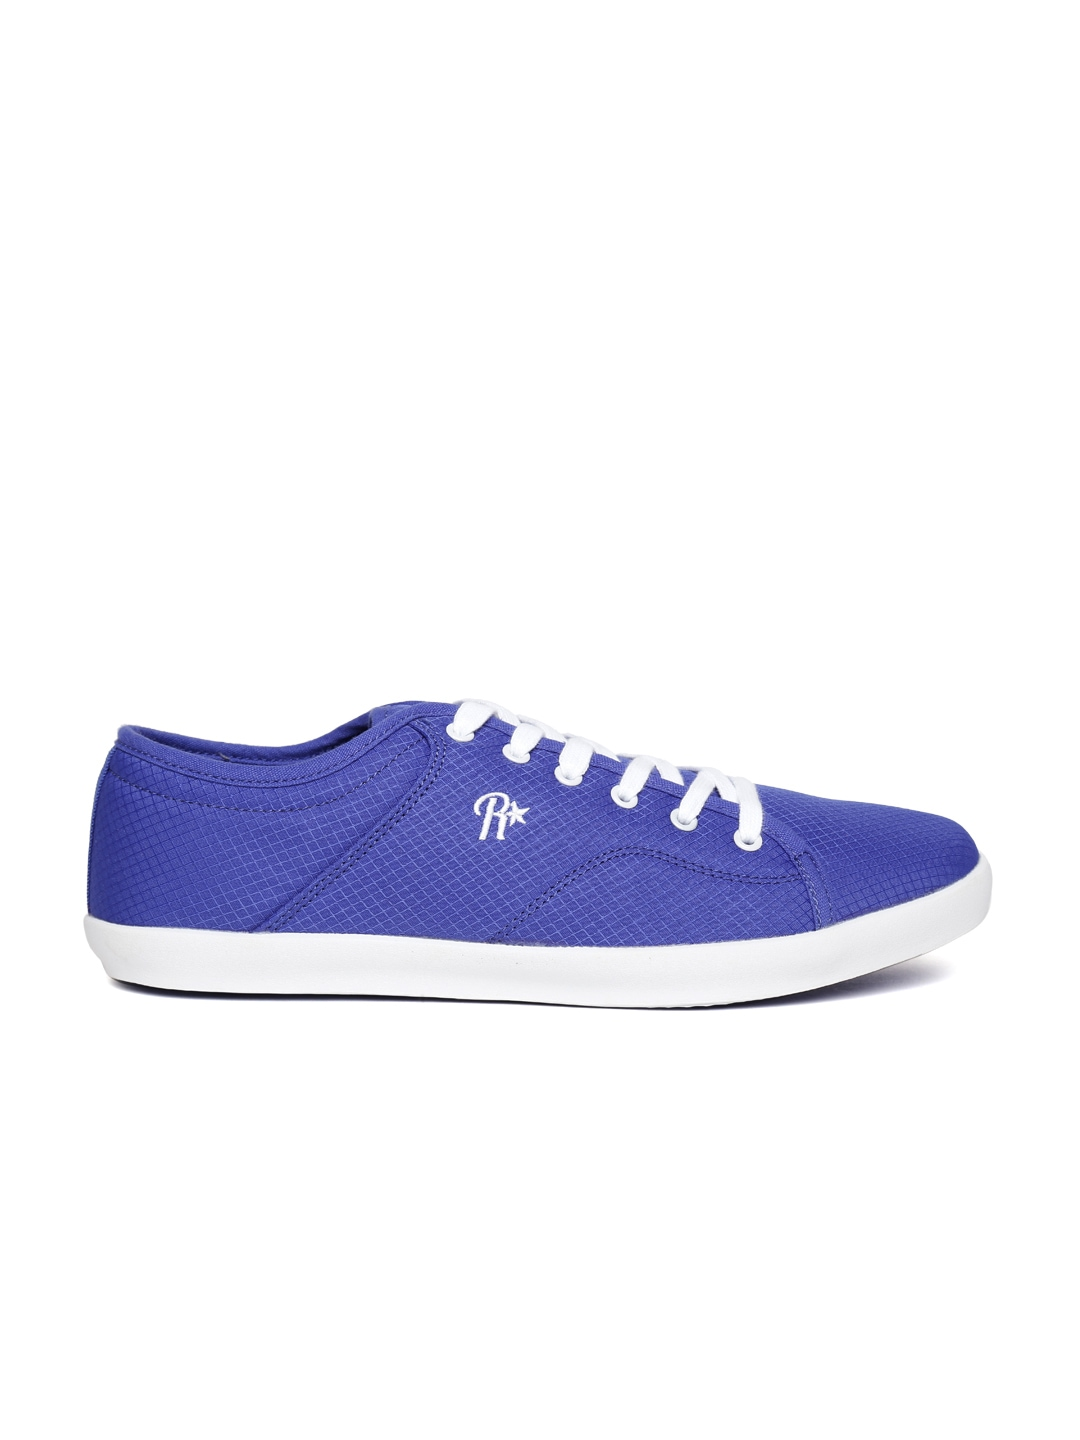 myntra roadster blue casual shoes 856906 buy myntra